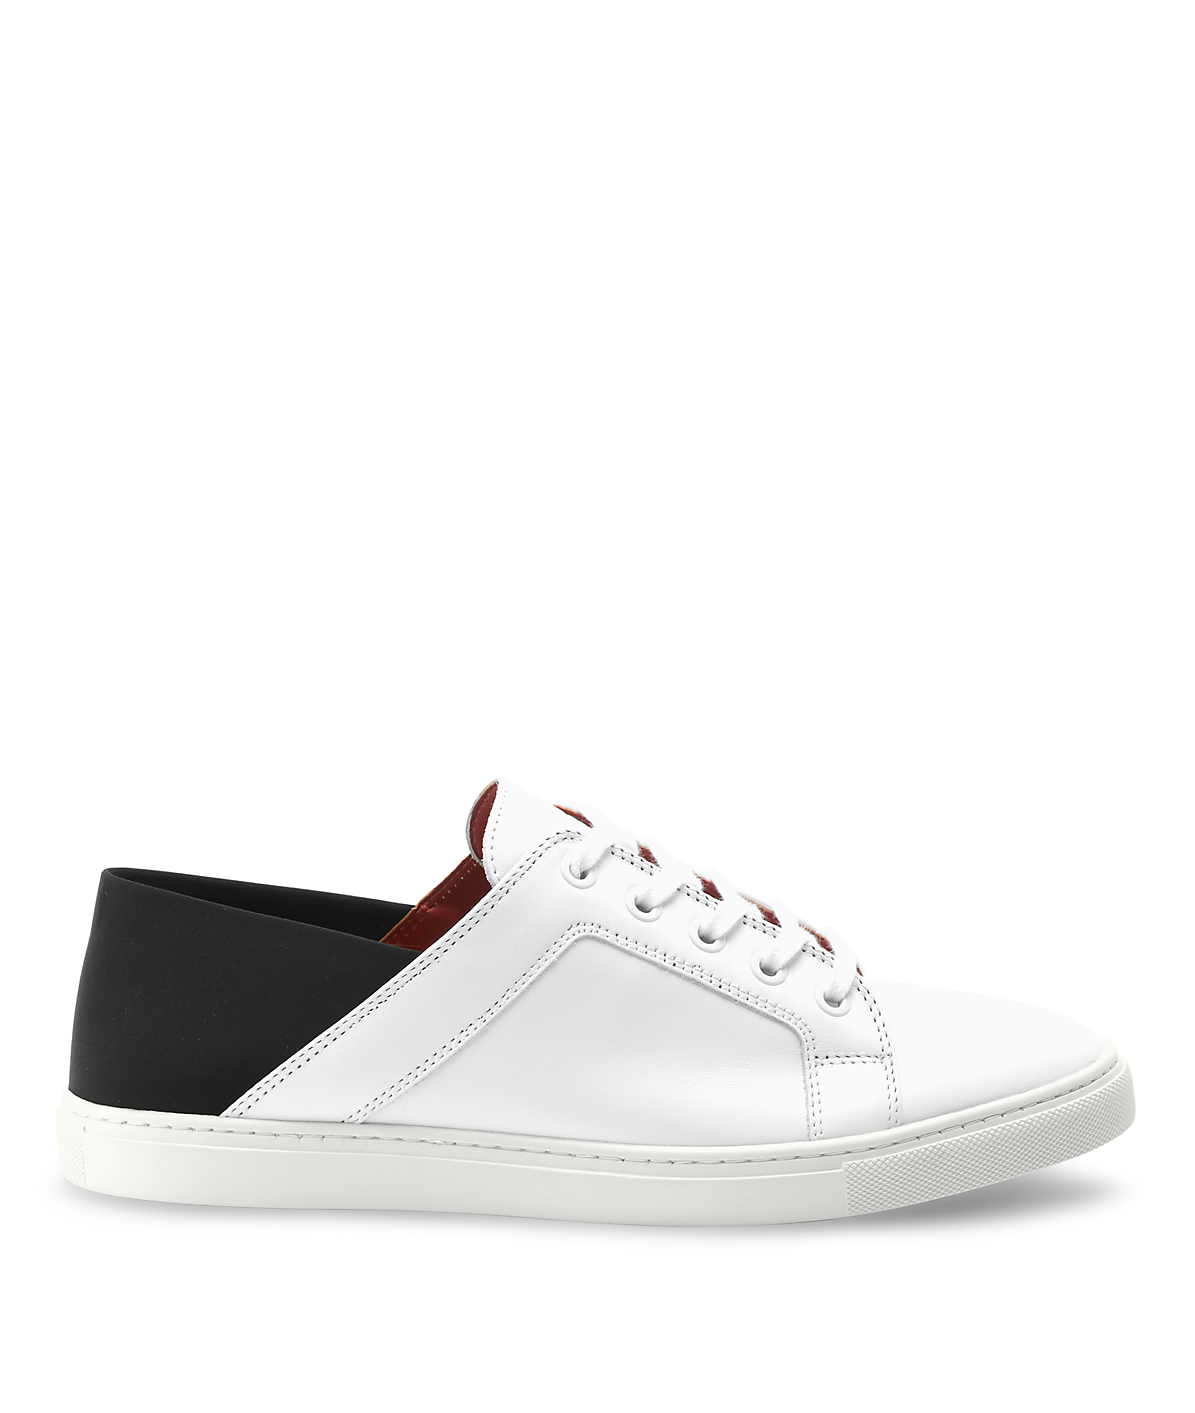 Stretch slip-ons from liebeskind